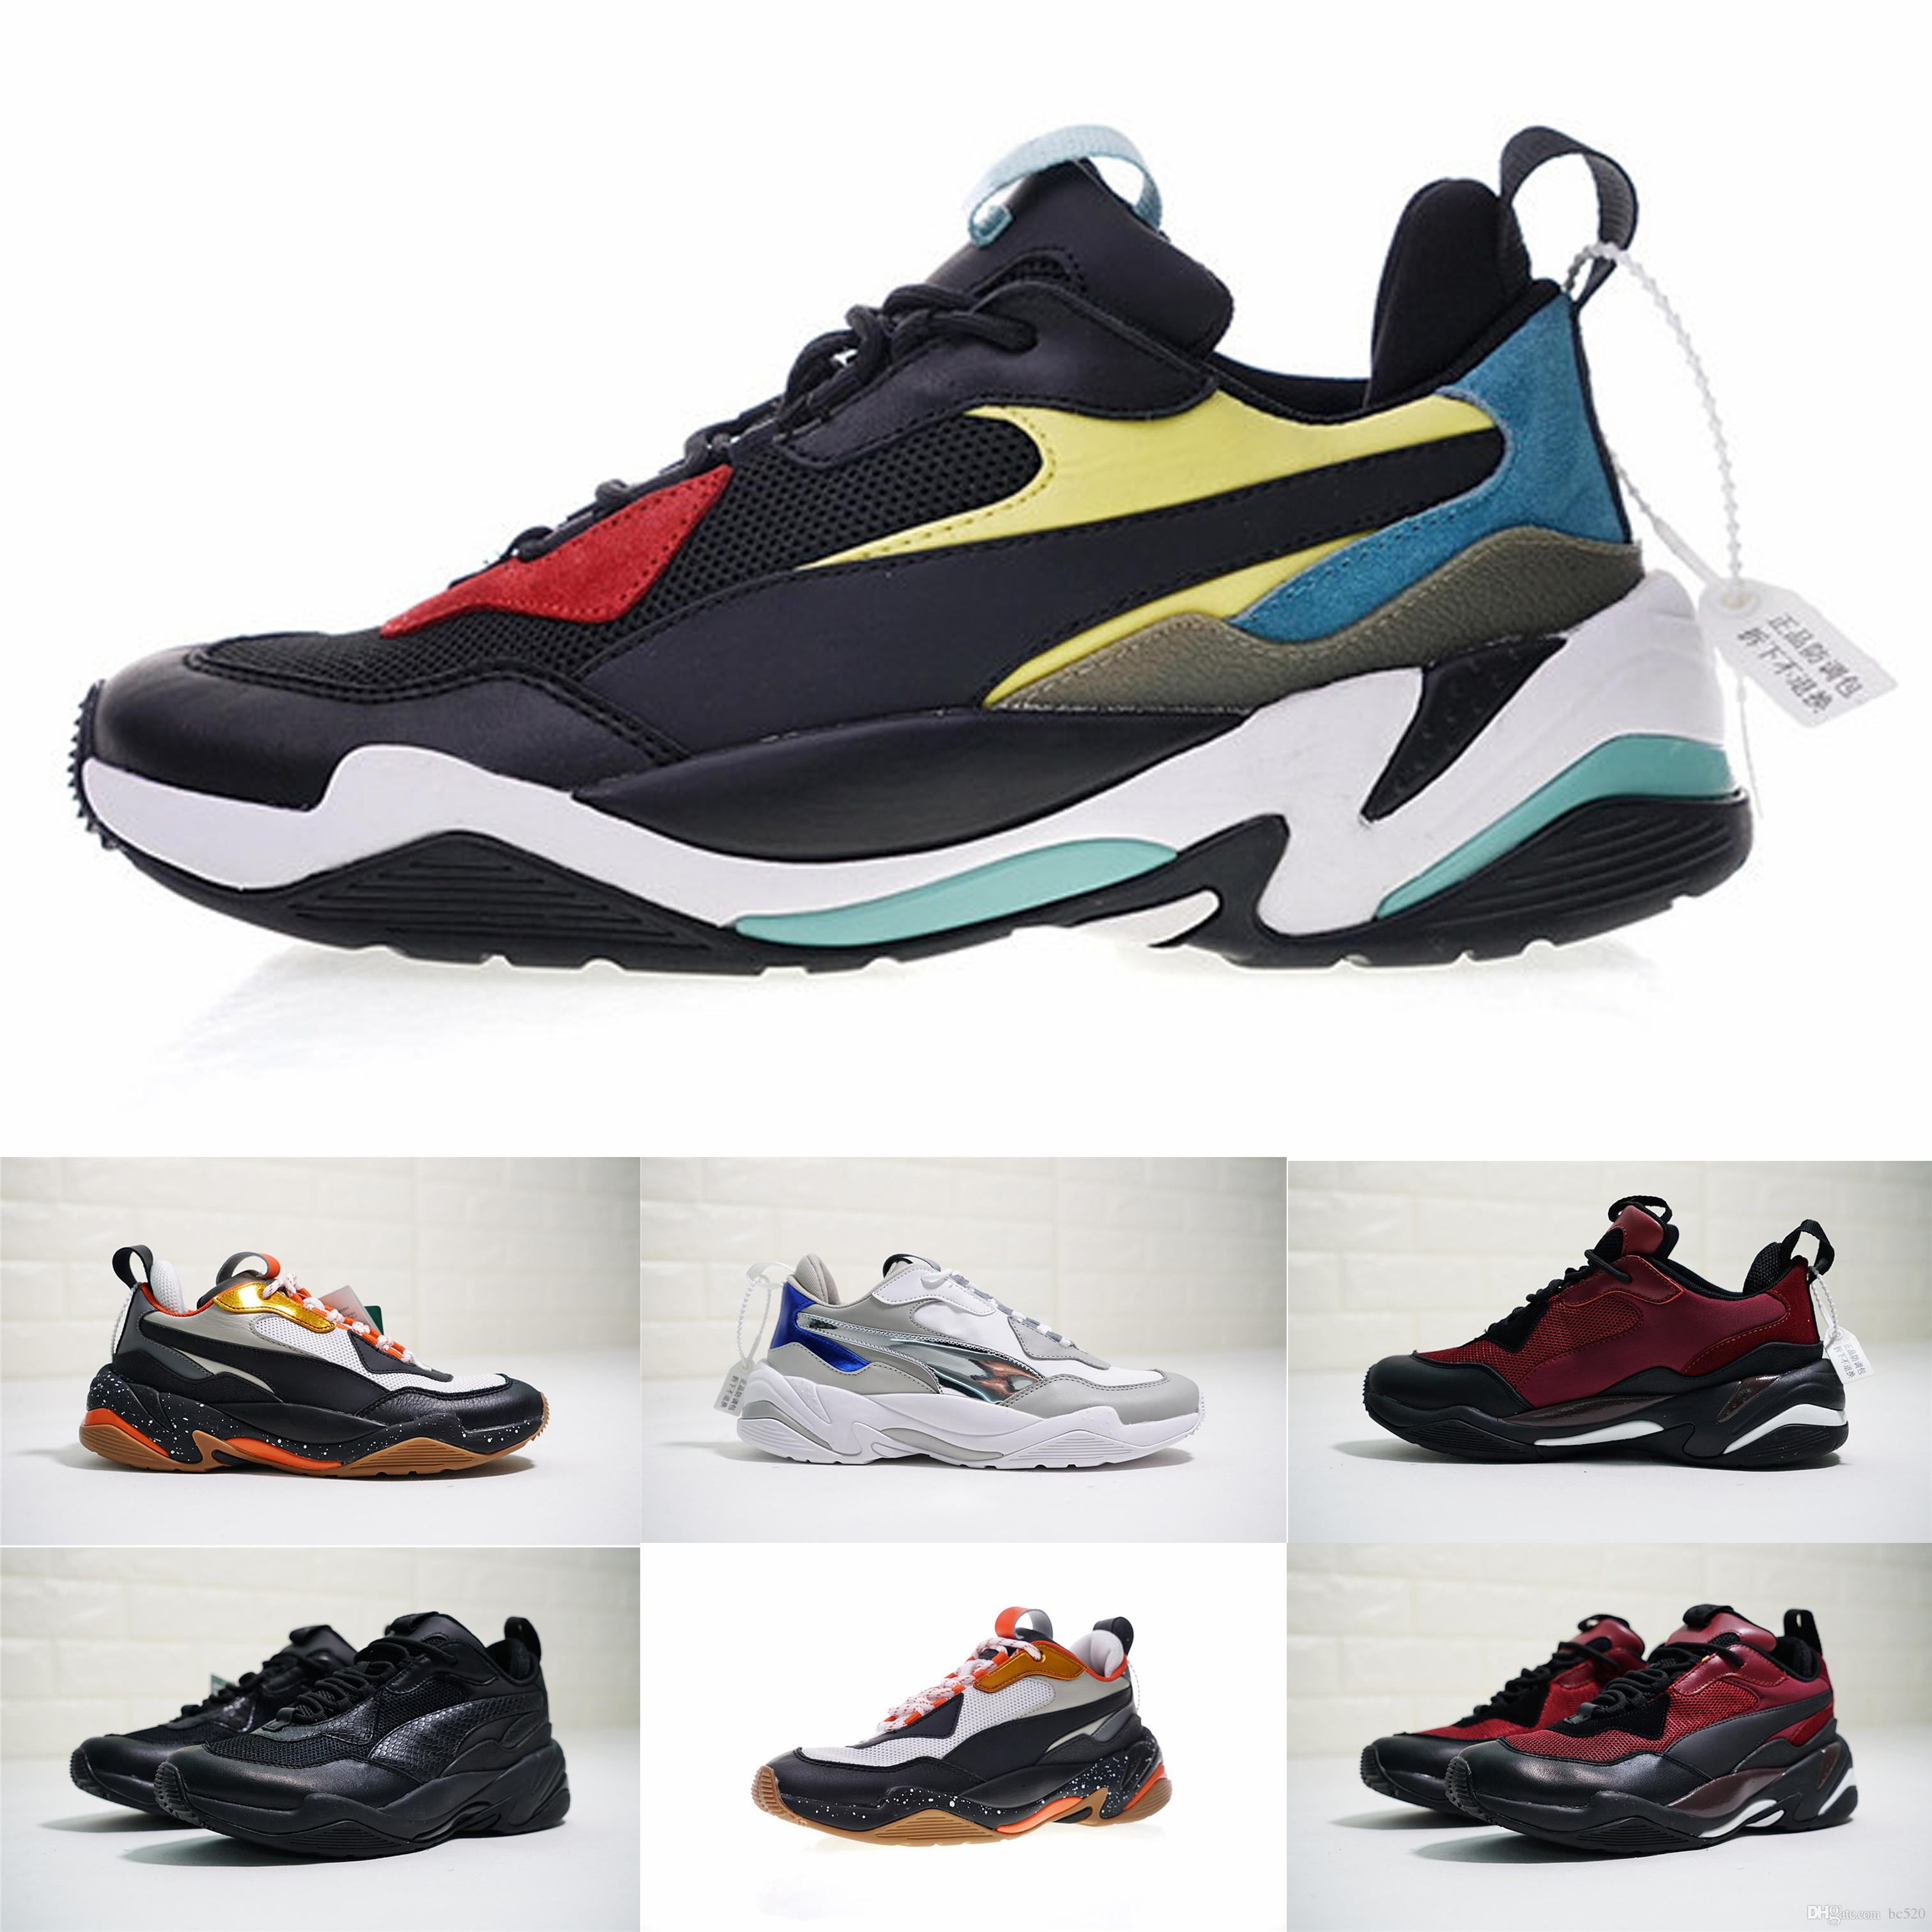 42abc1516a629d 2018 Newest Pum Thunder Spectra Doing Old Genuine Leather Casual Old Dad  Shoes Thunder Spectra Breathable Enuine Leather Running Sneakers Jordans  Running ...